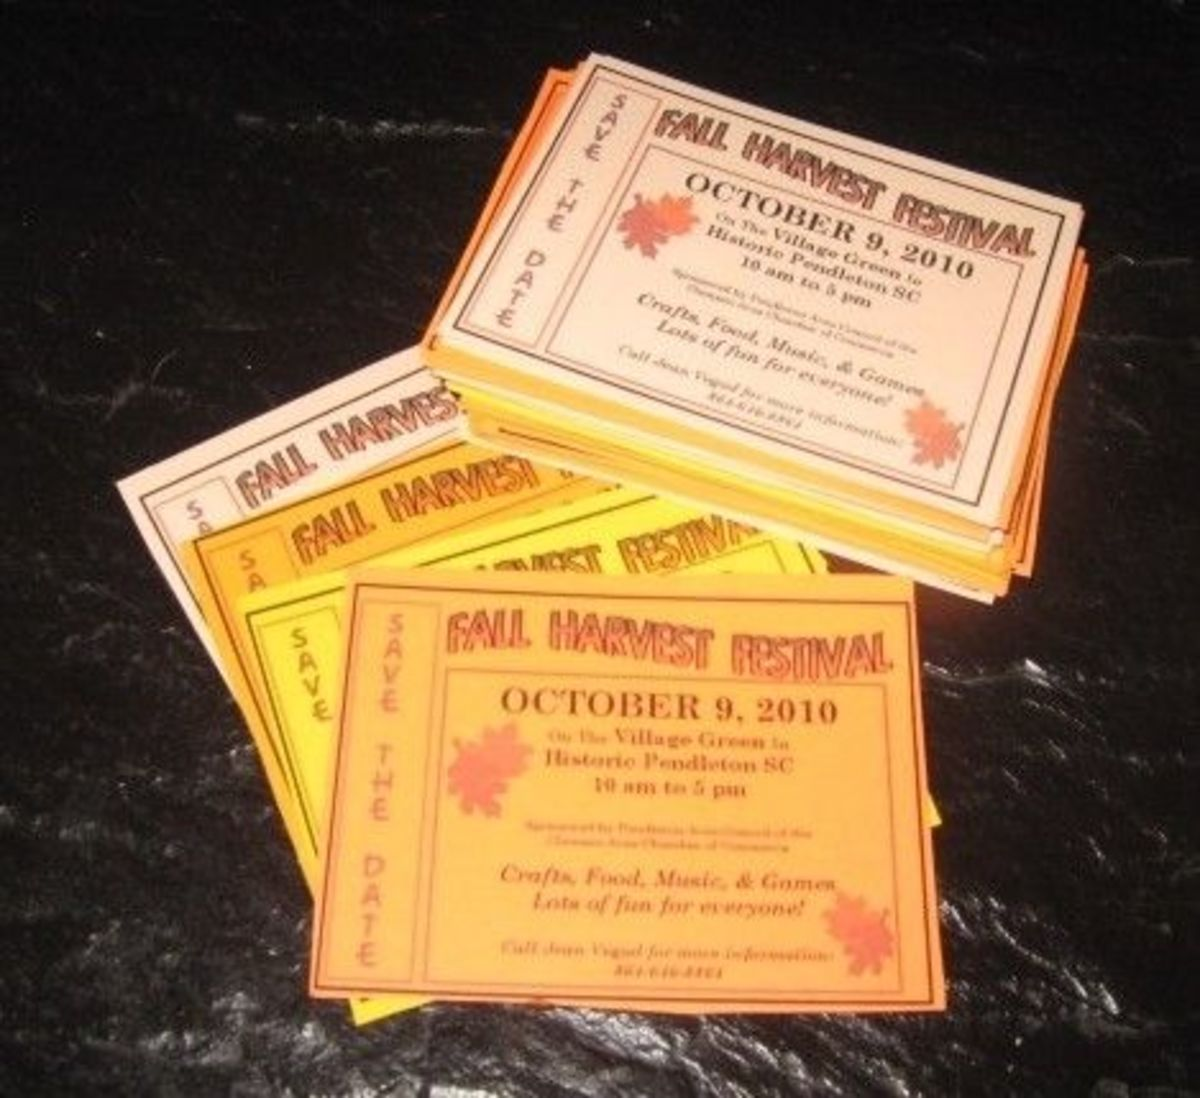 Save The Date cards for Fall Harvest Festival